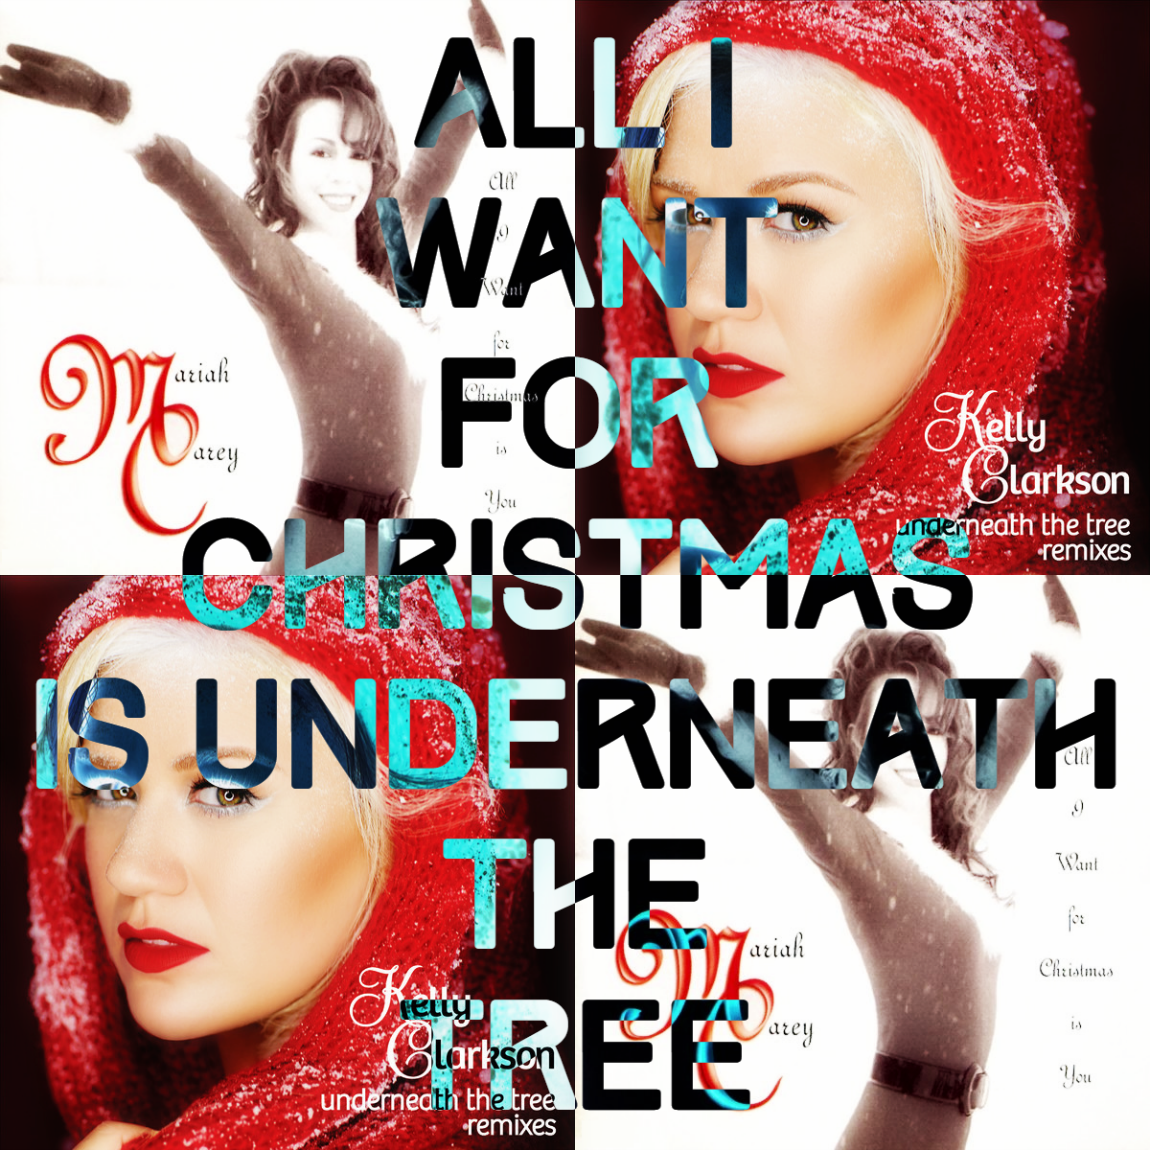 Mariah Carey vs. Kelly Clarkson - All I Want for Christmas is Underneath The Tree